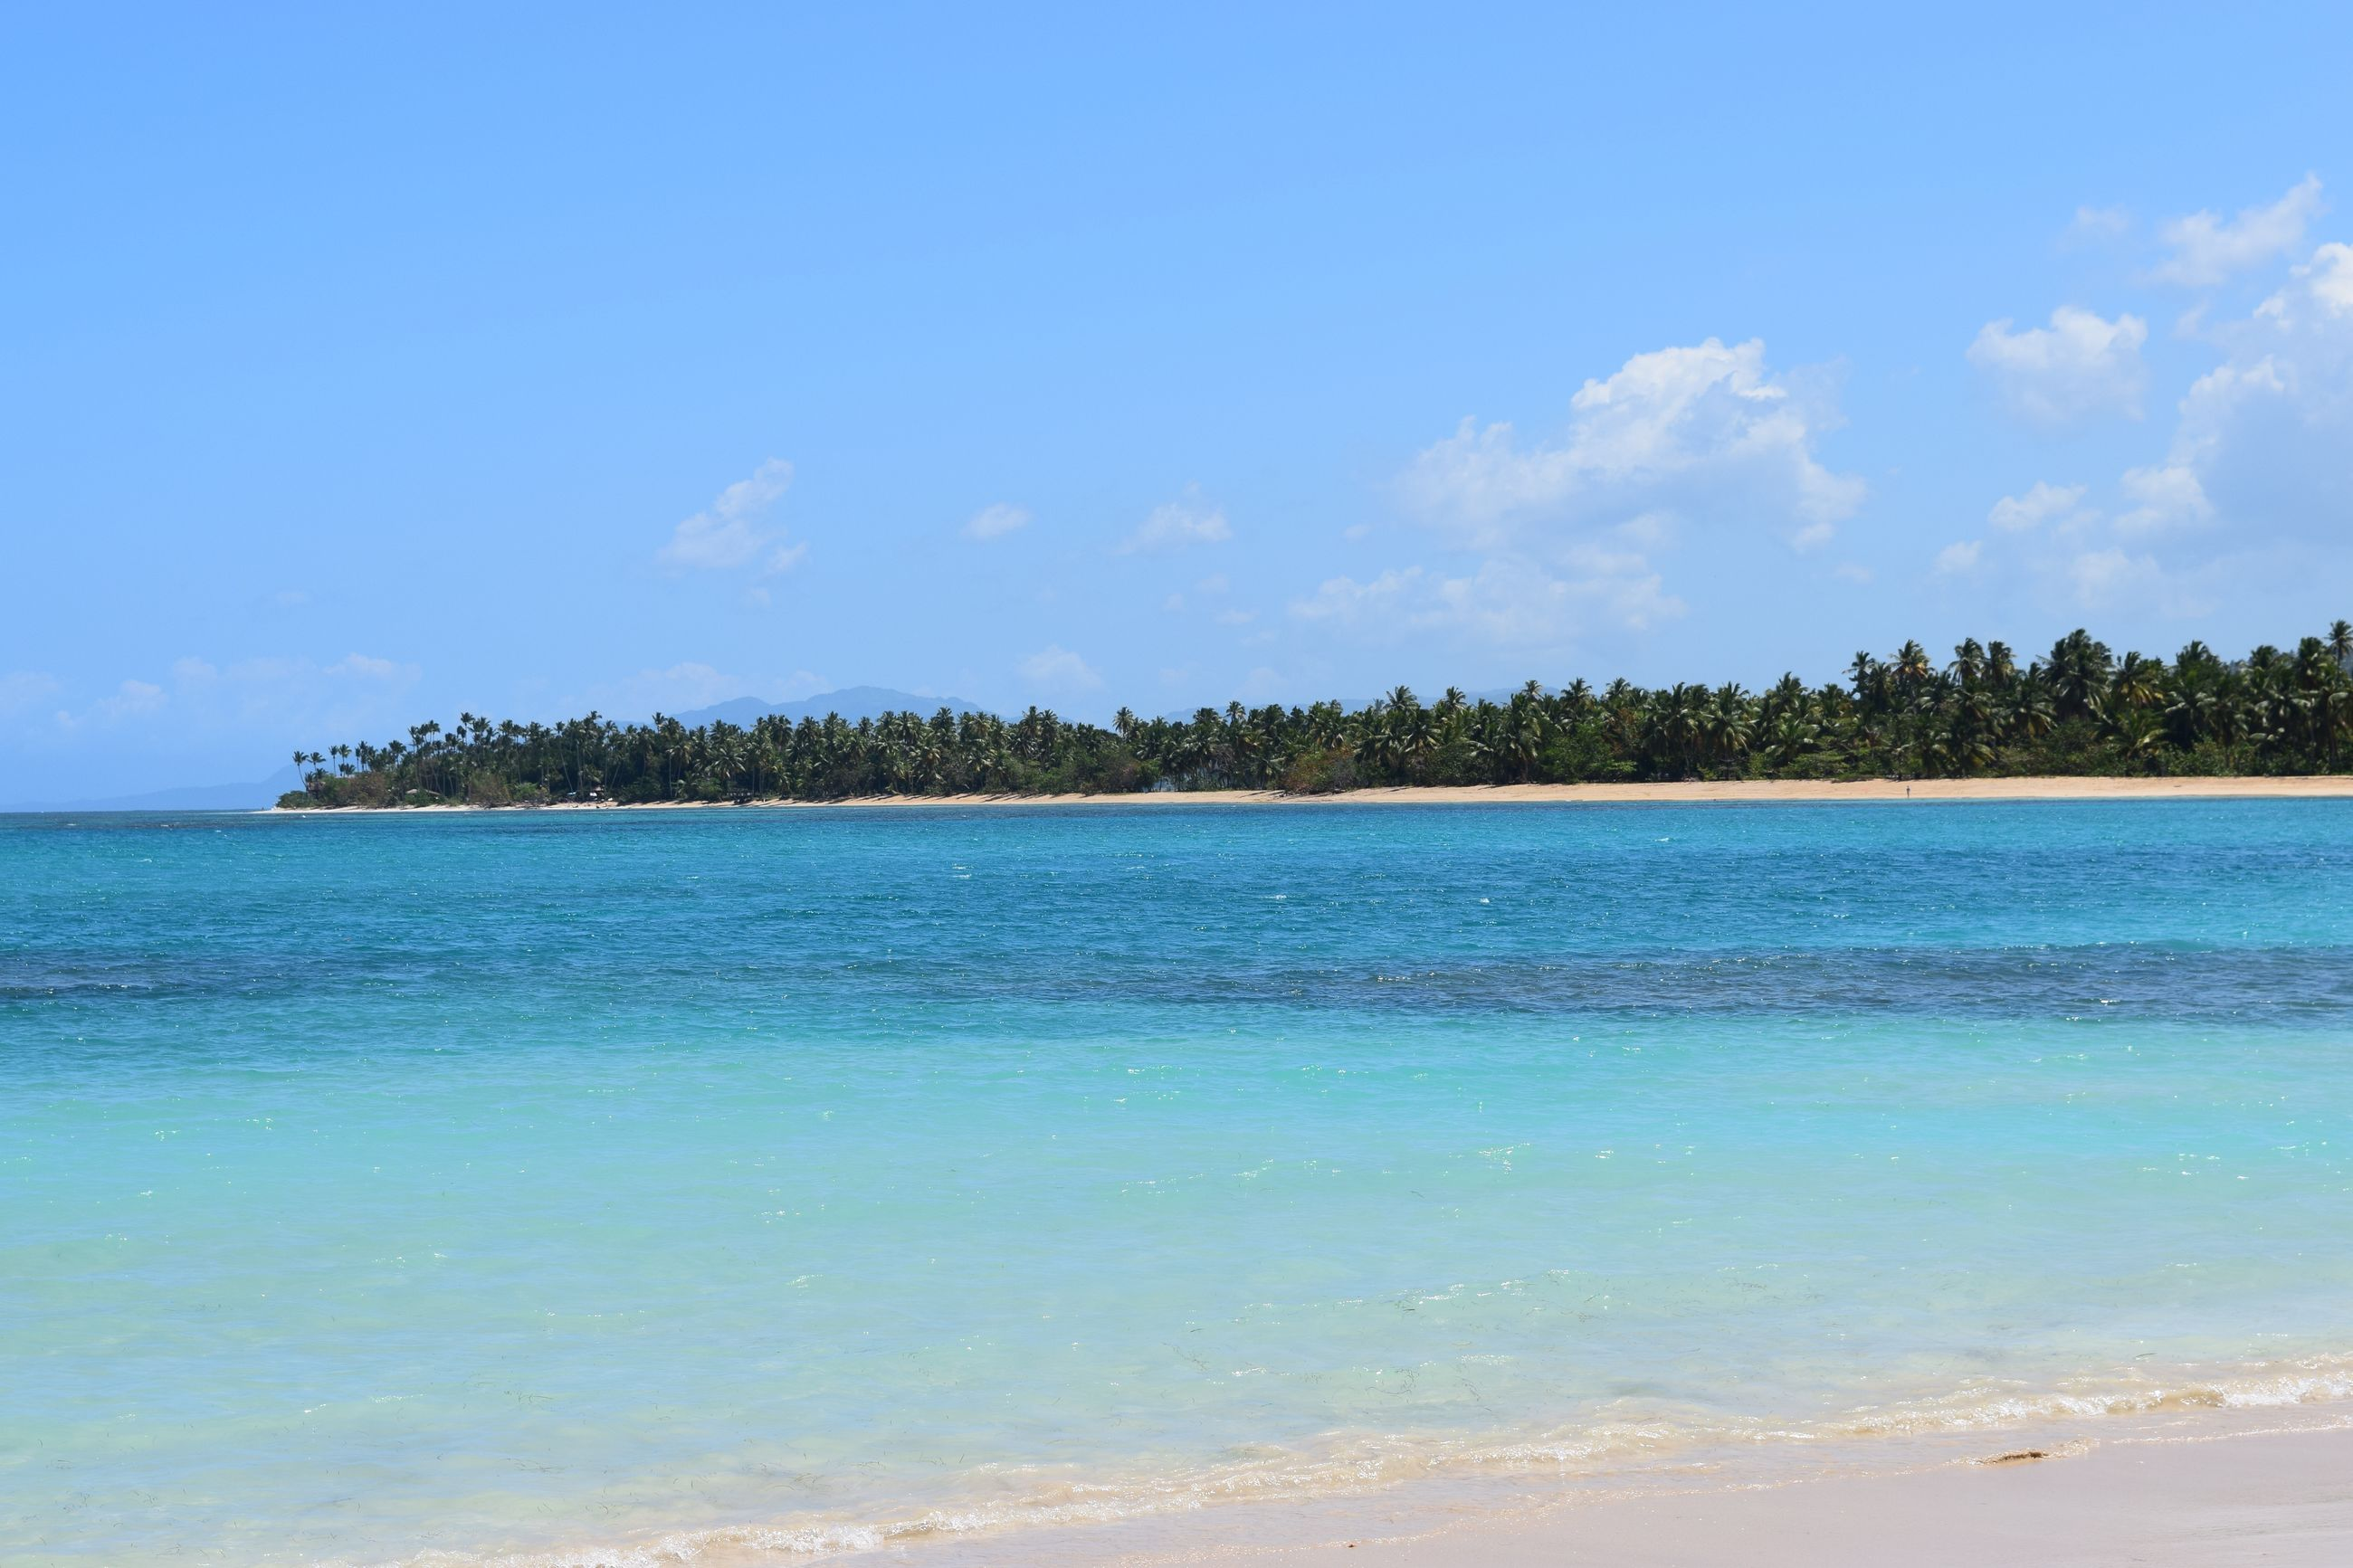 tree, sky, blue, scenics, water, sea, nature, beauty in nature, tranquility, tranquil scene, palm tree, beach, day, outdoors, idyllic, growth, travel destinations, no people, horizon over water